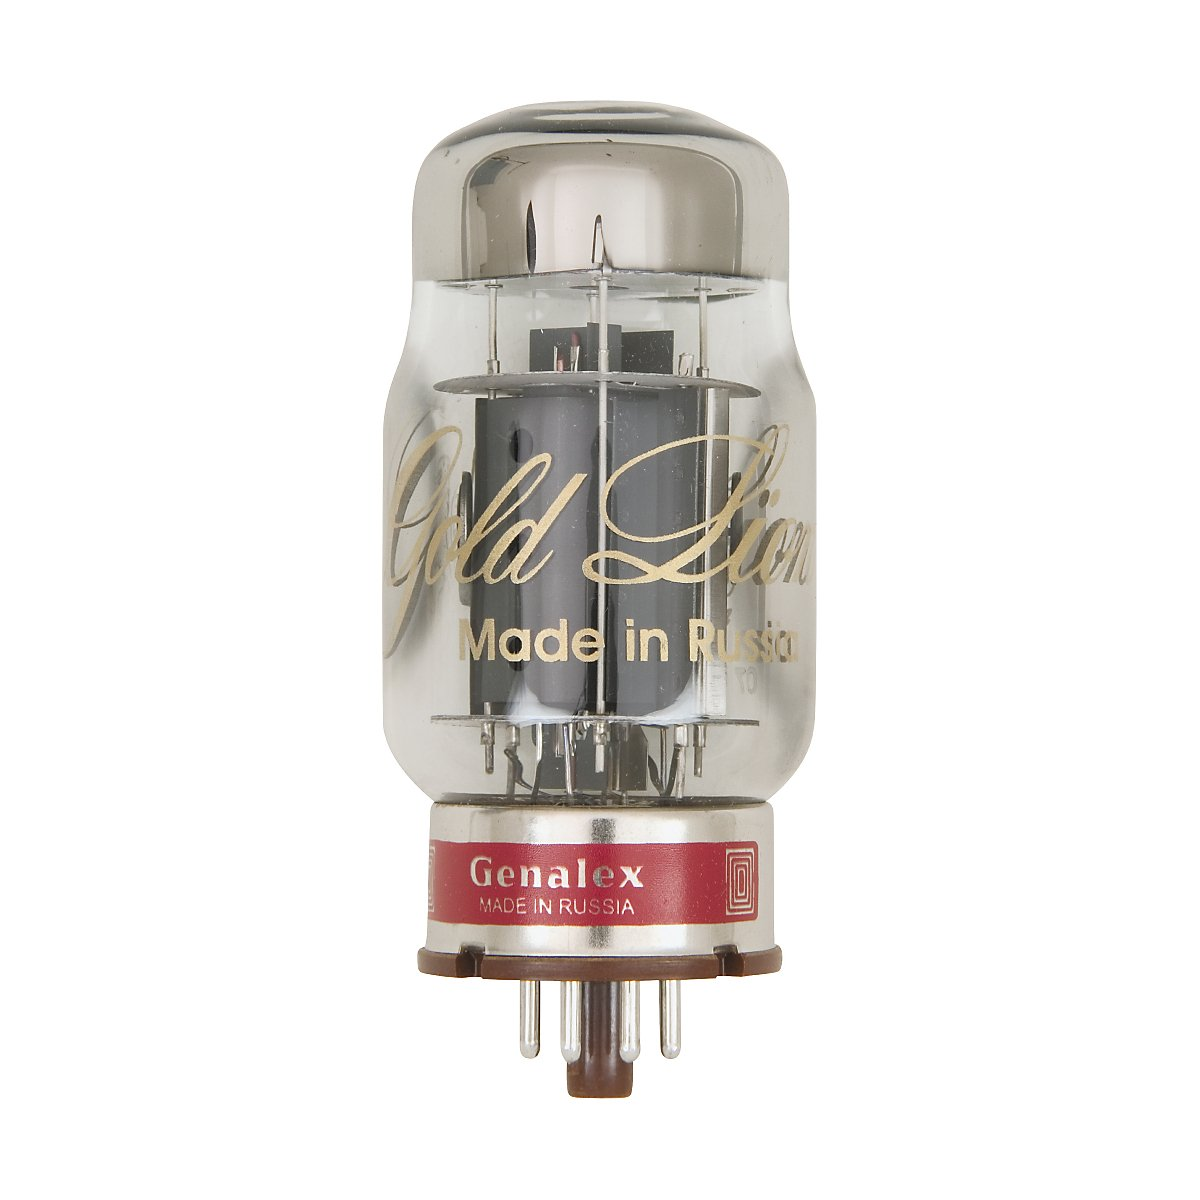 Genalex KT88 Gold Lion Power Tube Sets Medium Quartet 1pc russia tube new genalex gold lion tube ecc82 12au7 b729 tube 9pins electron tube free shipping